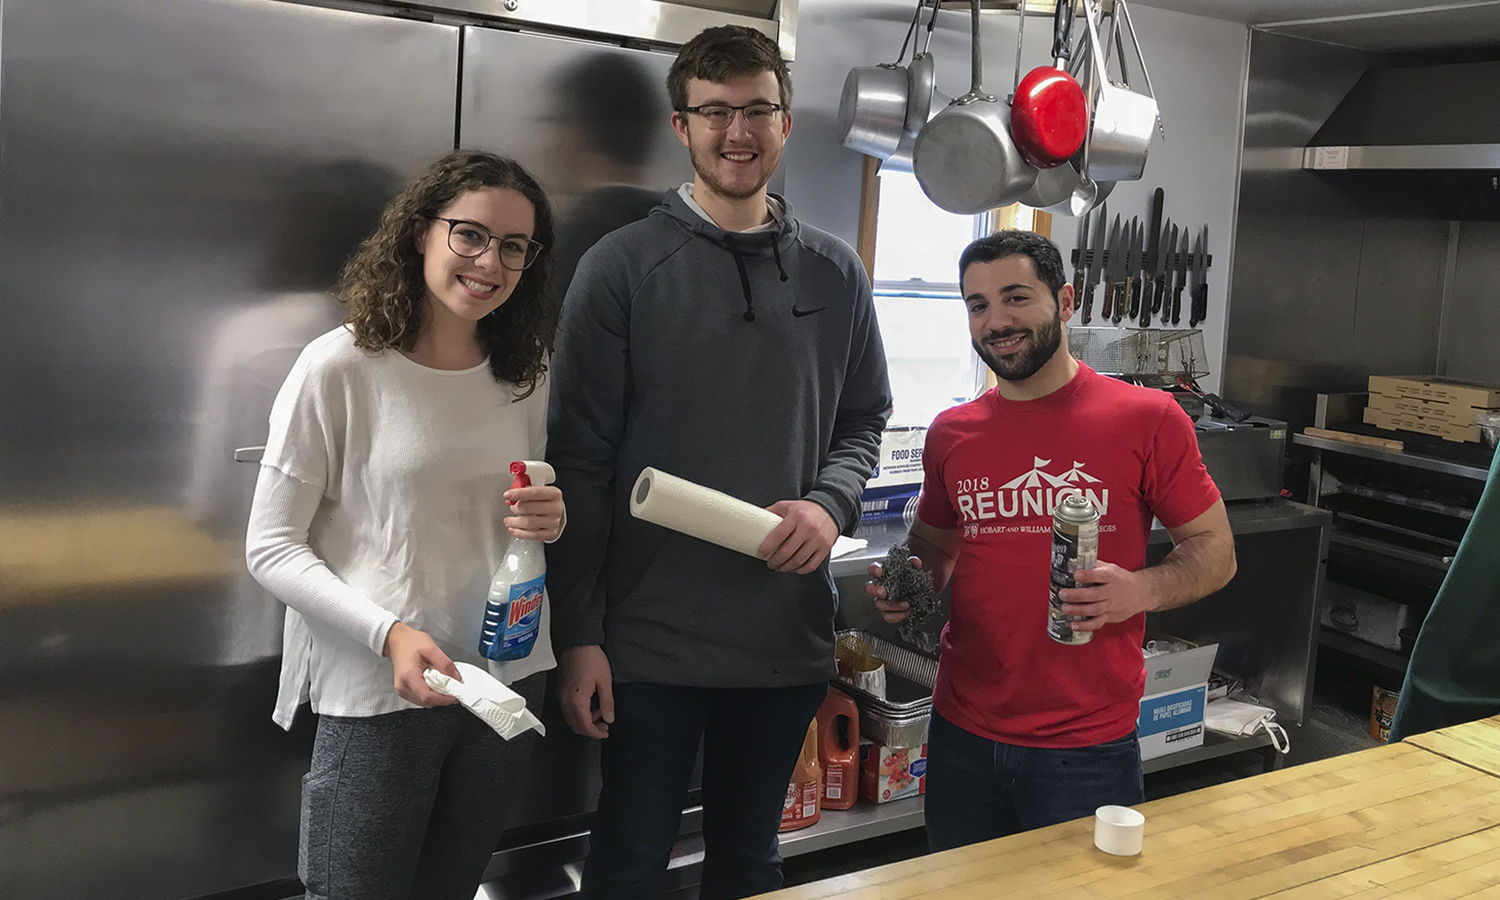 Carling Landeche '21, Grant Emerson '20 and Mike Baroody '21​ finish cleaning the kitchen at the Knights of Columbus as part of the Geneva Heroes program. The program consists of a combination of HWS students and local Geneva Middle and High School students and meets every Saturday to preform service for the Geneva community.